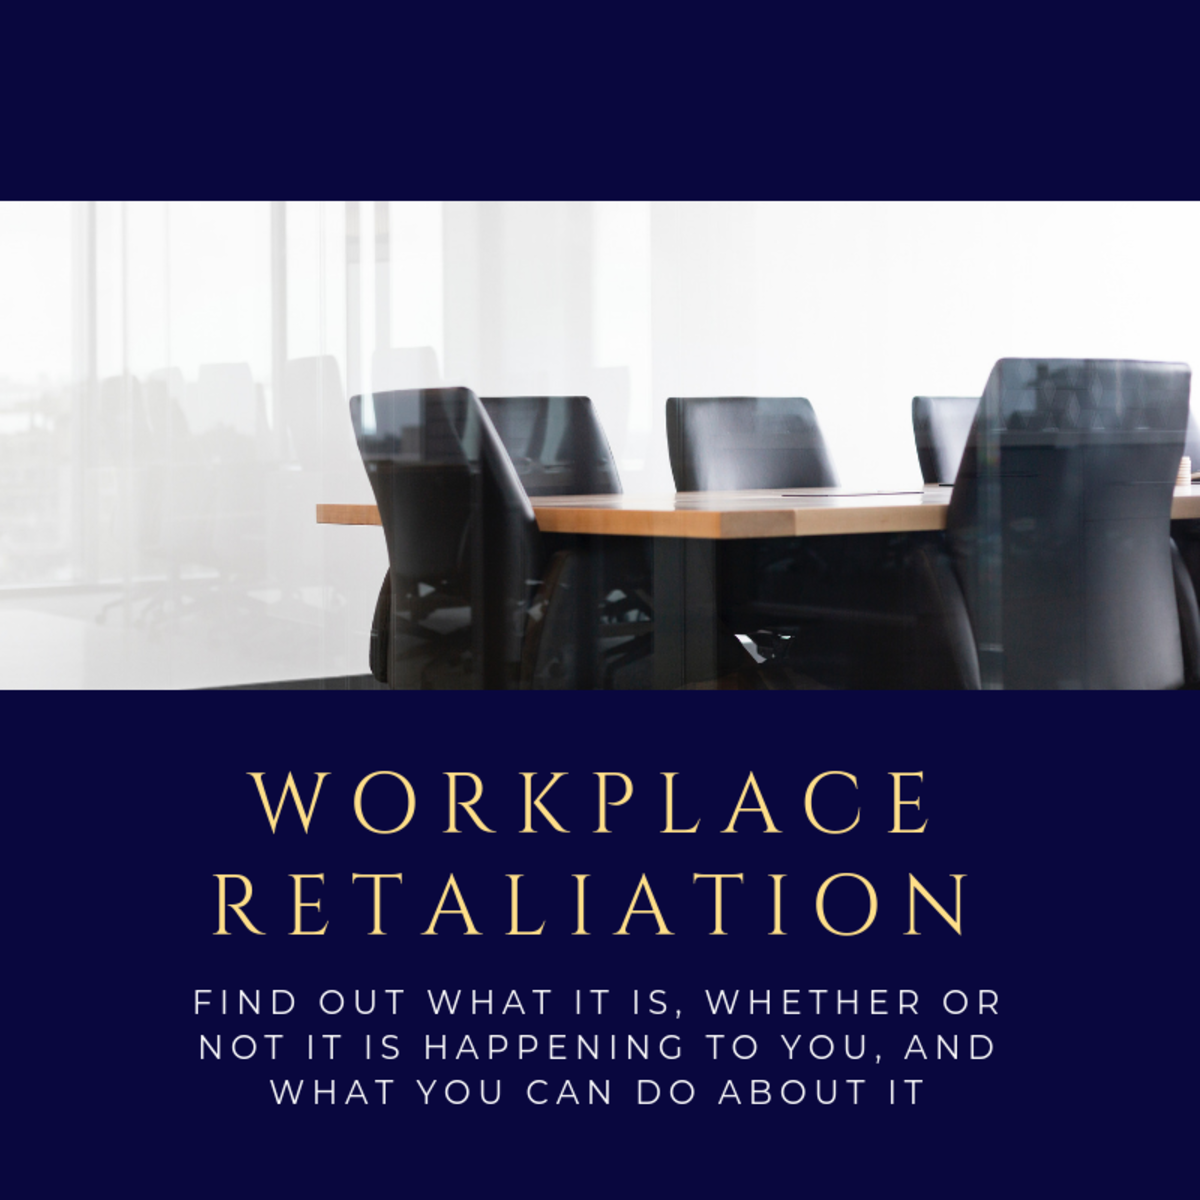 What Is Workplace Retaliation And Why Are Employers So Afraid Of